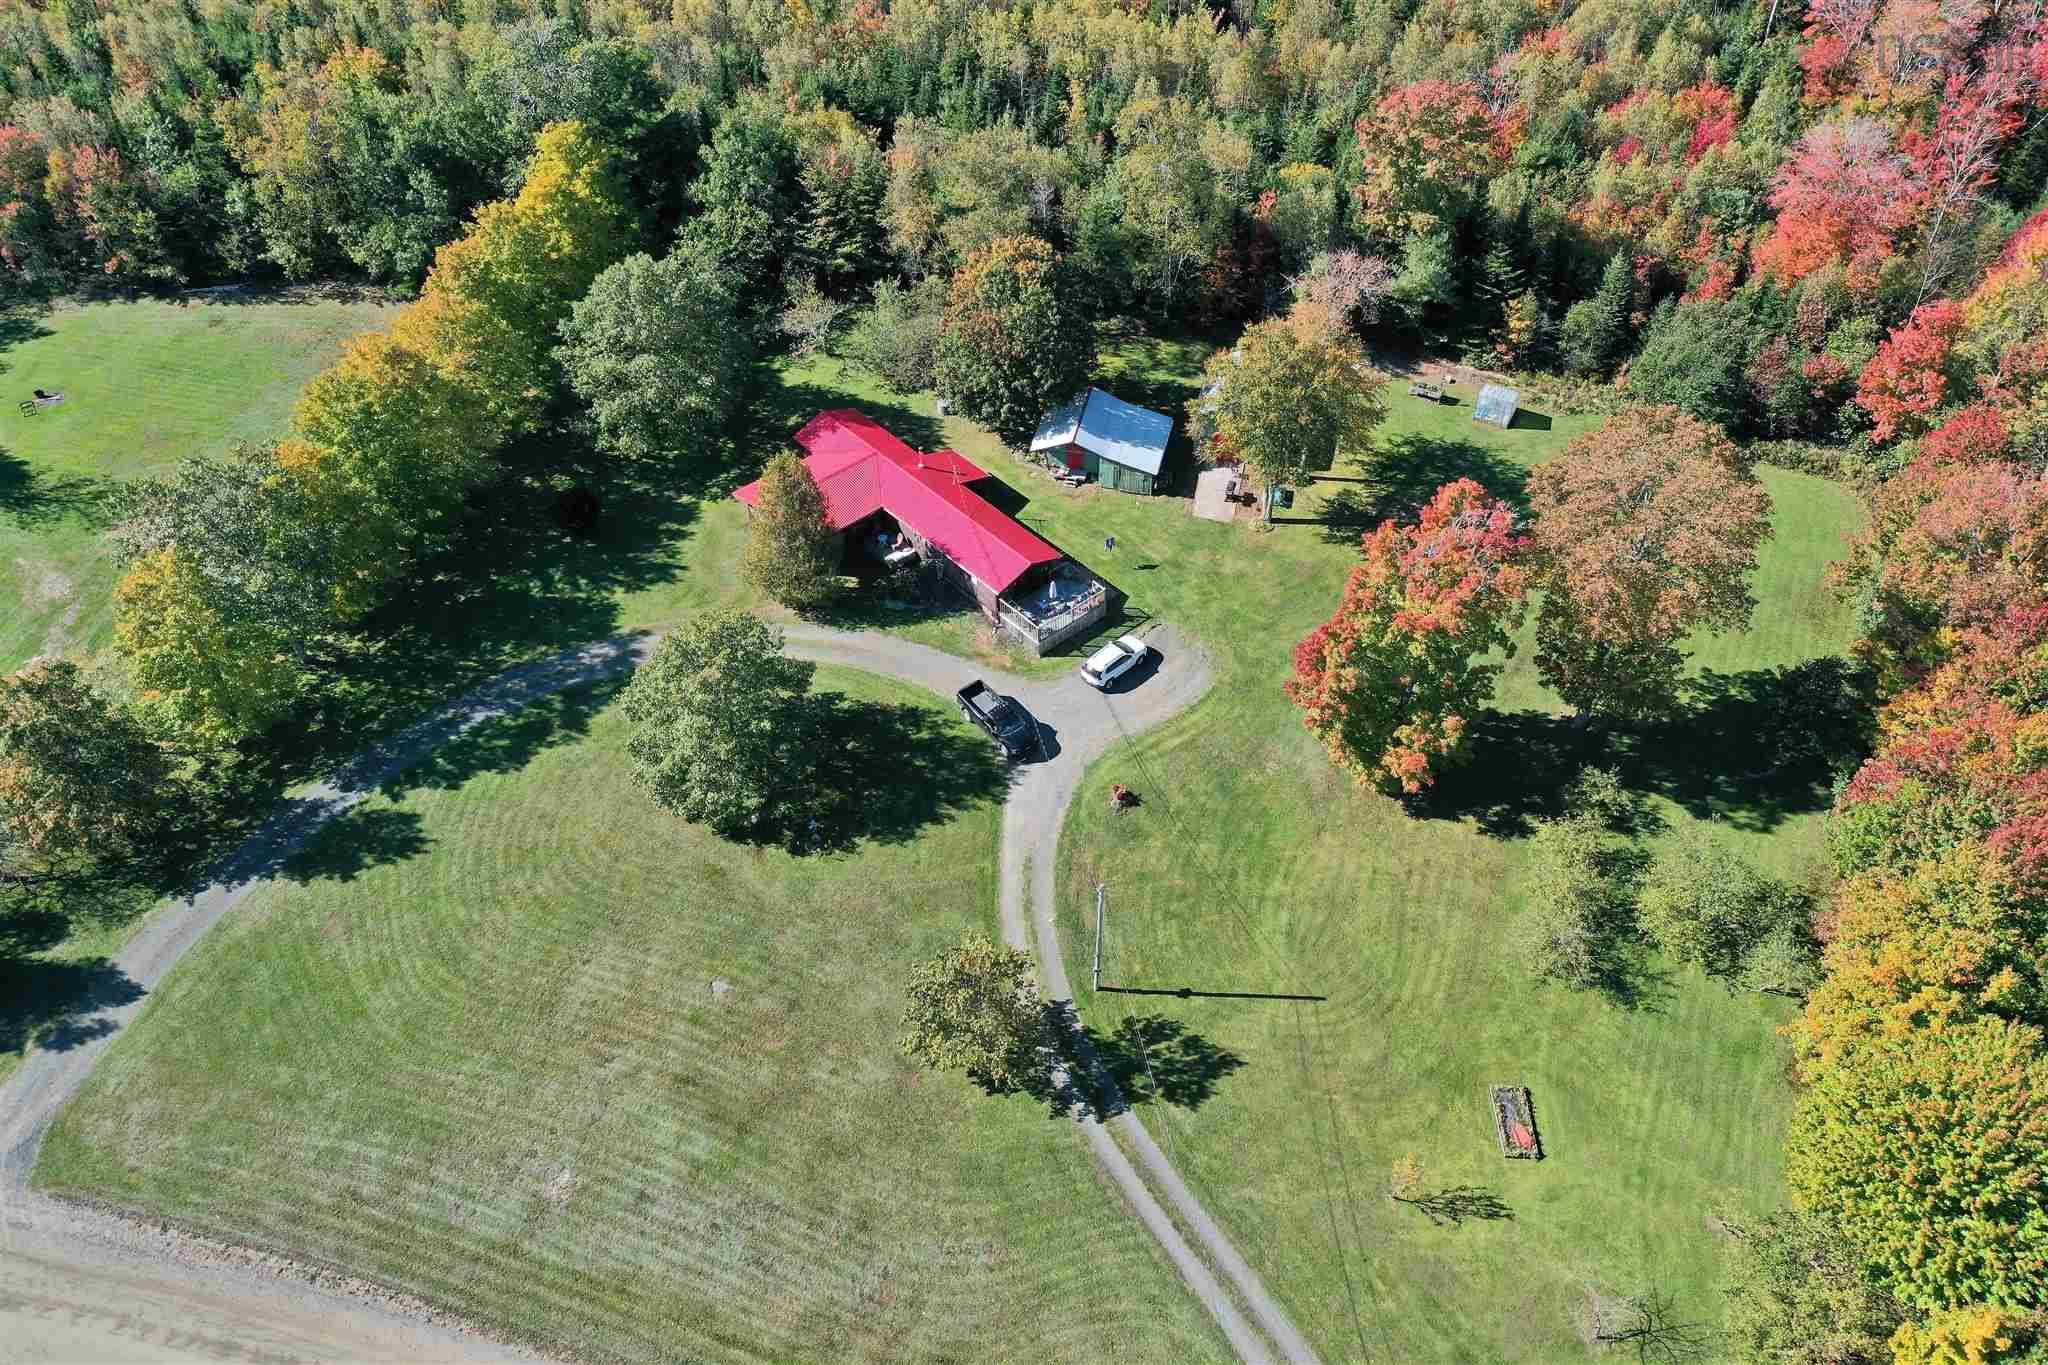 Main Photo: 82 MORGANVILLE Road in Bear River: 401-Digby County Residential for sale (Annapolis Valley)  : MLS®# 202125854